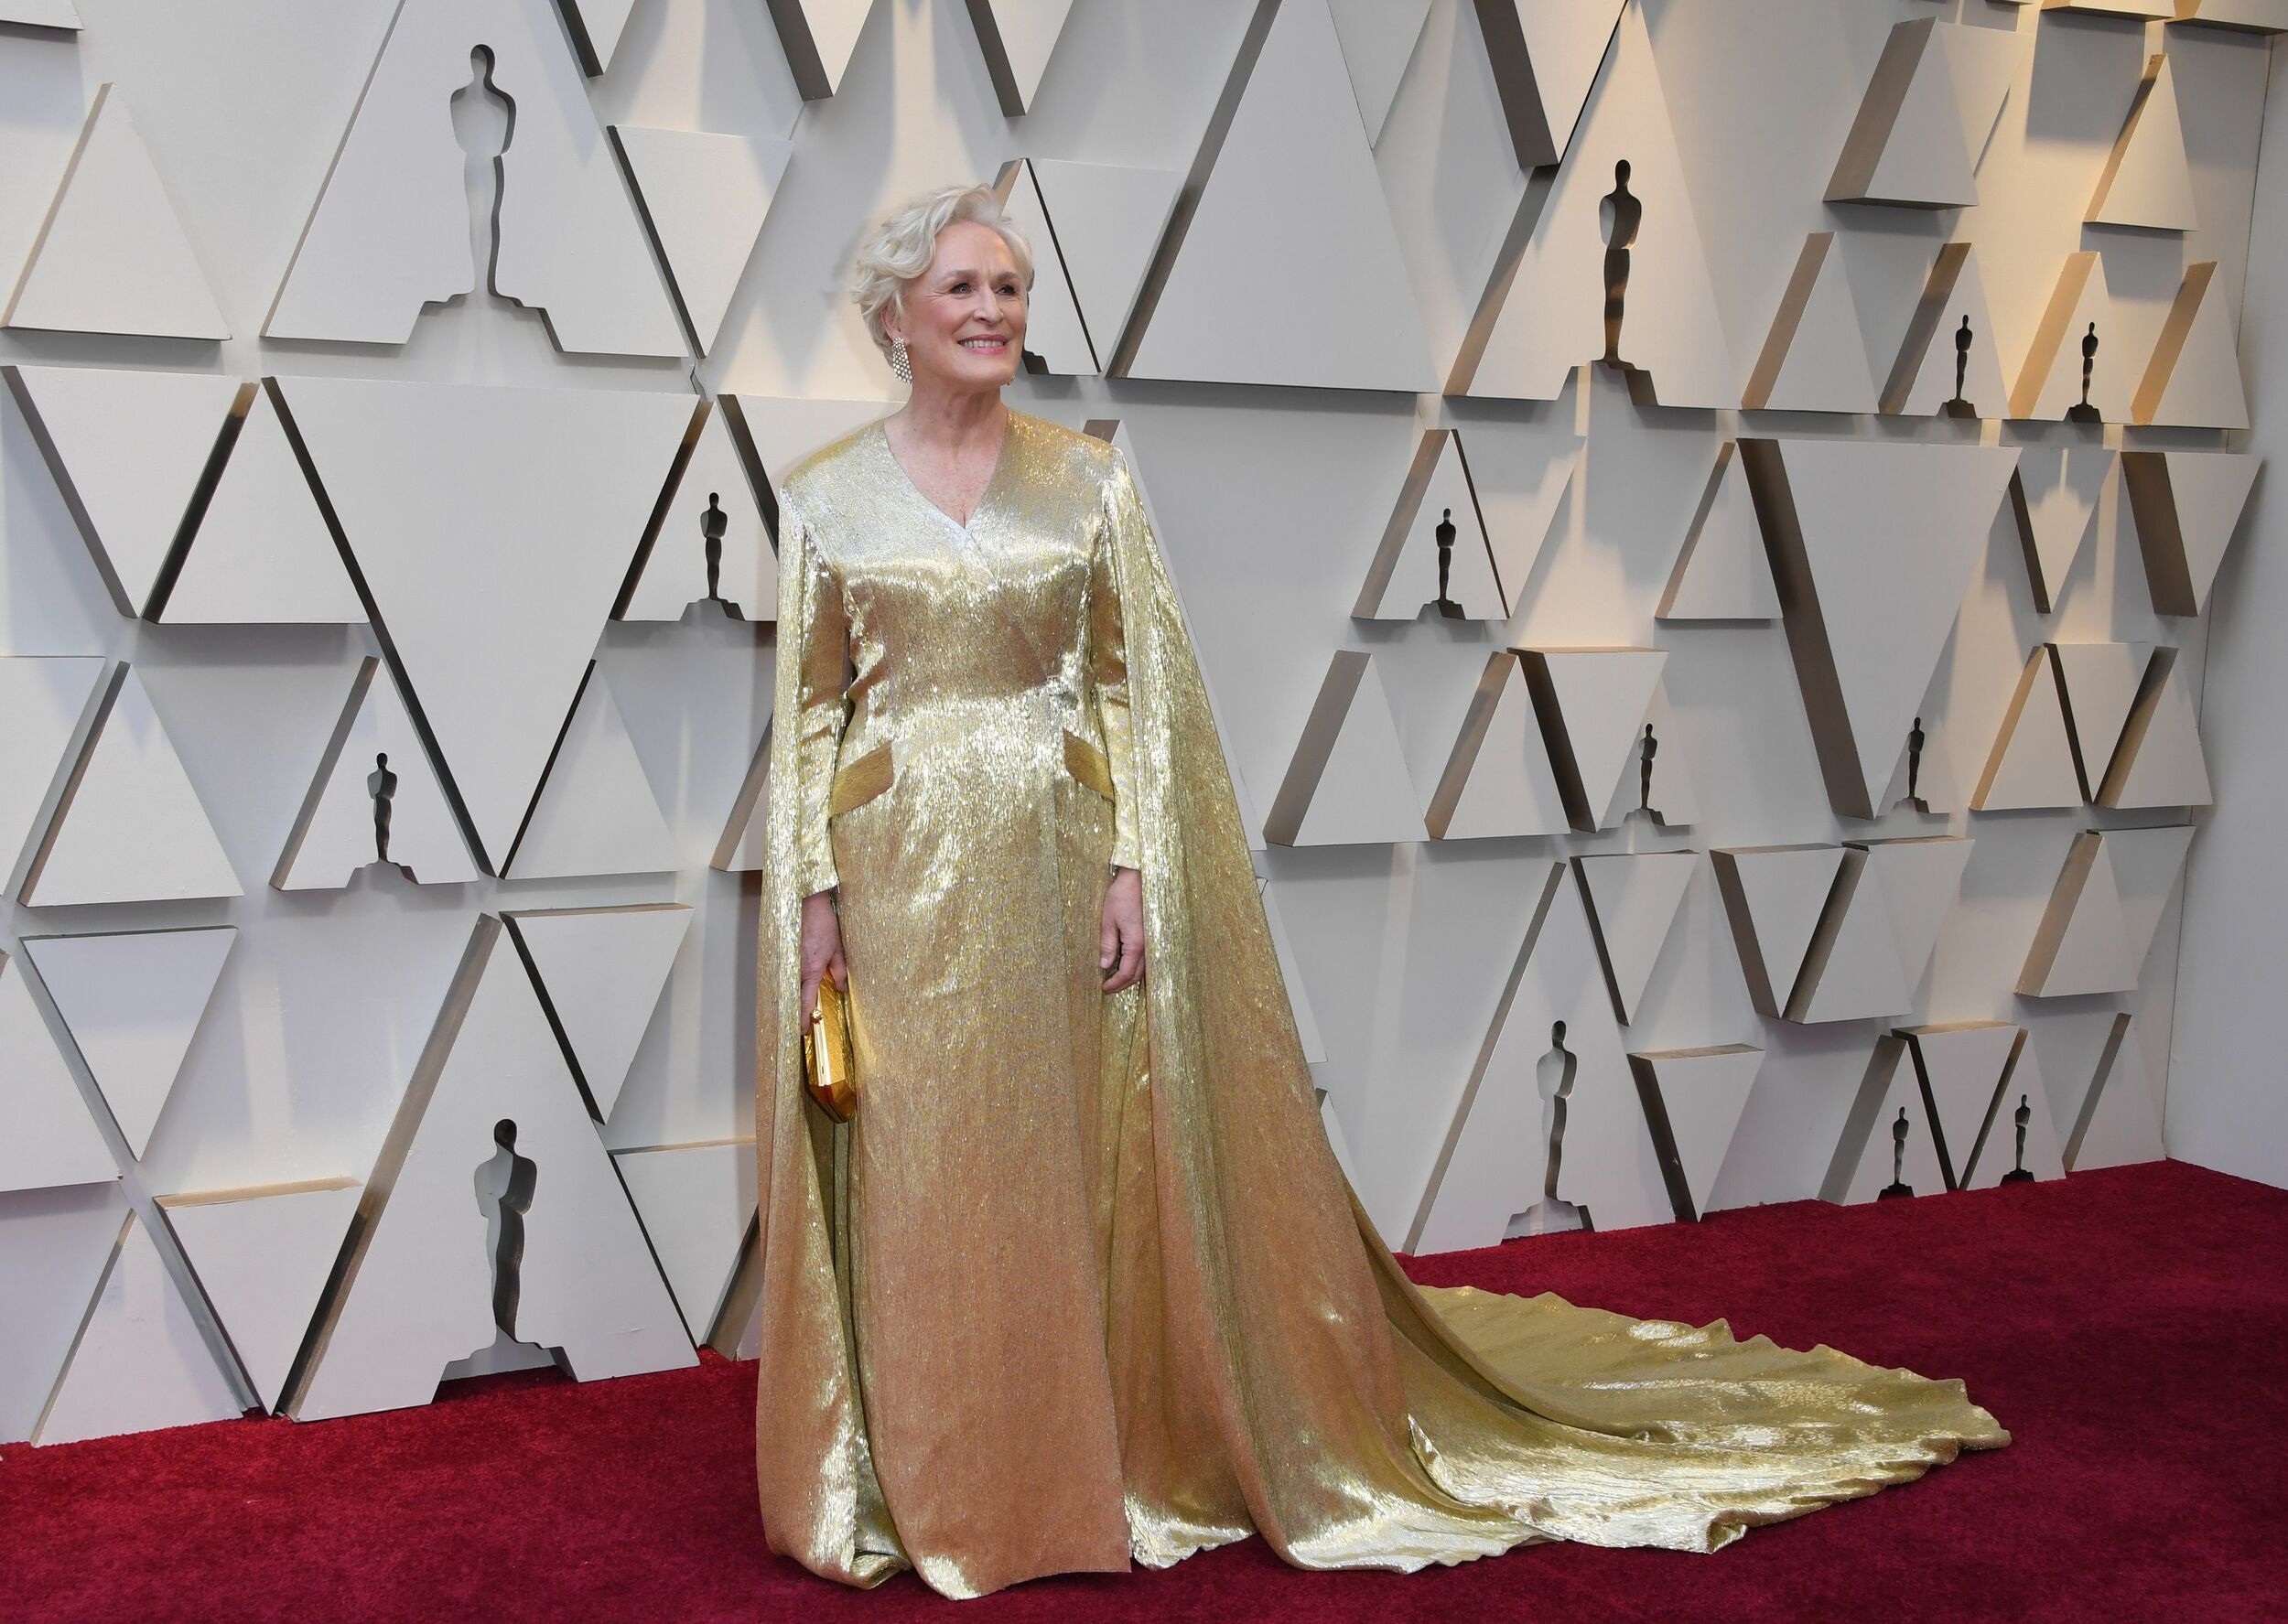 Best Actress hopeful Glenn Close is dressed as a caped Oscar statuette. Can you say the same, Lady Gaga?!